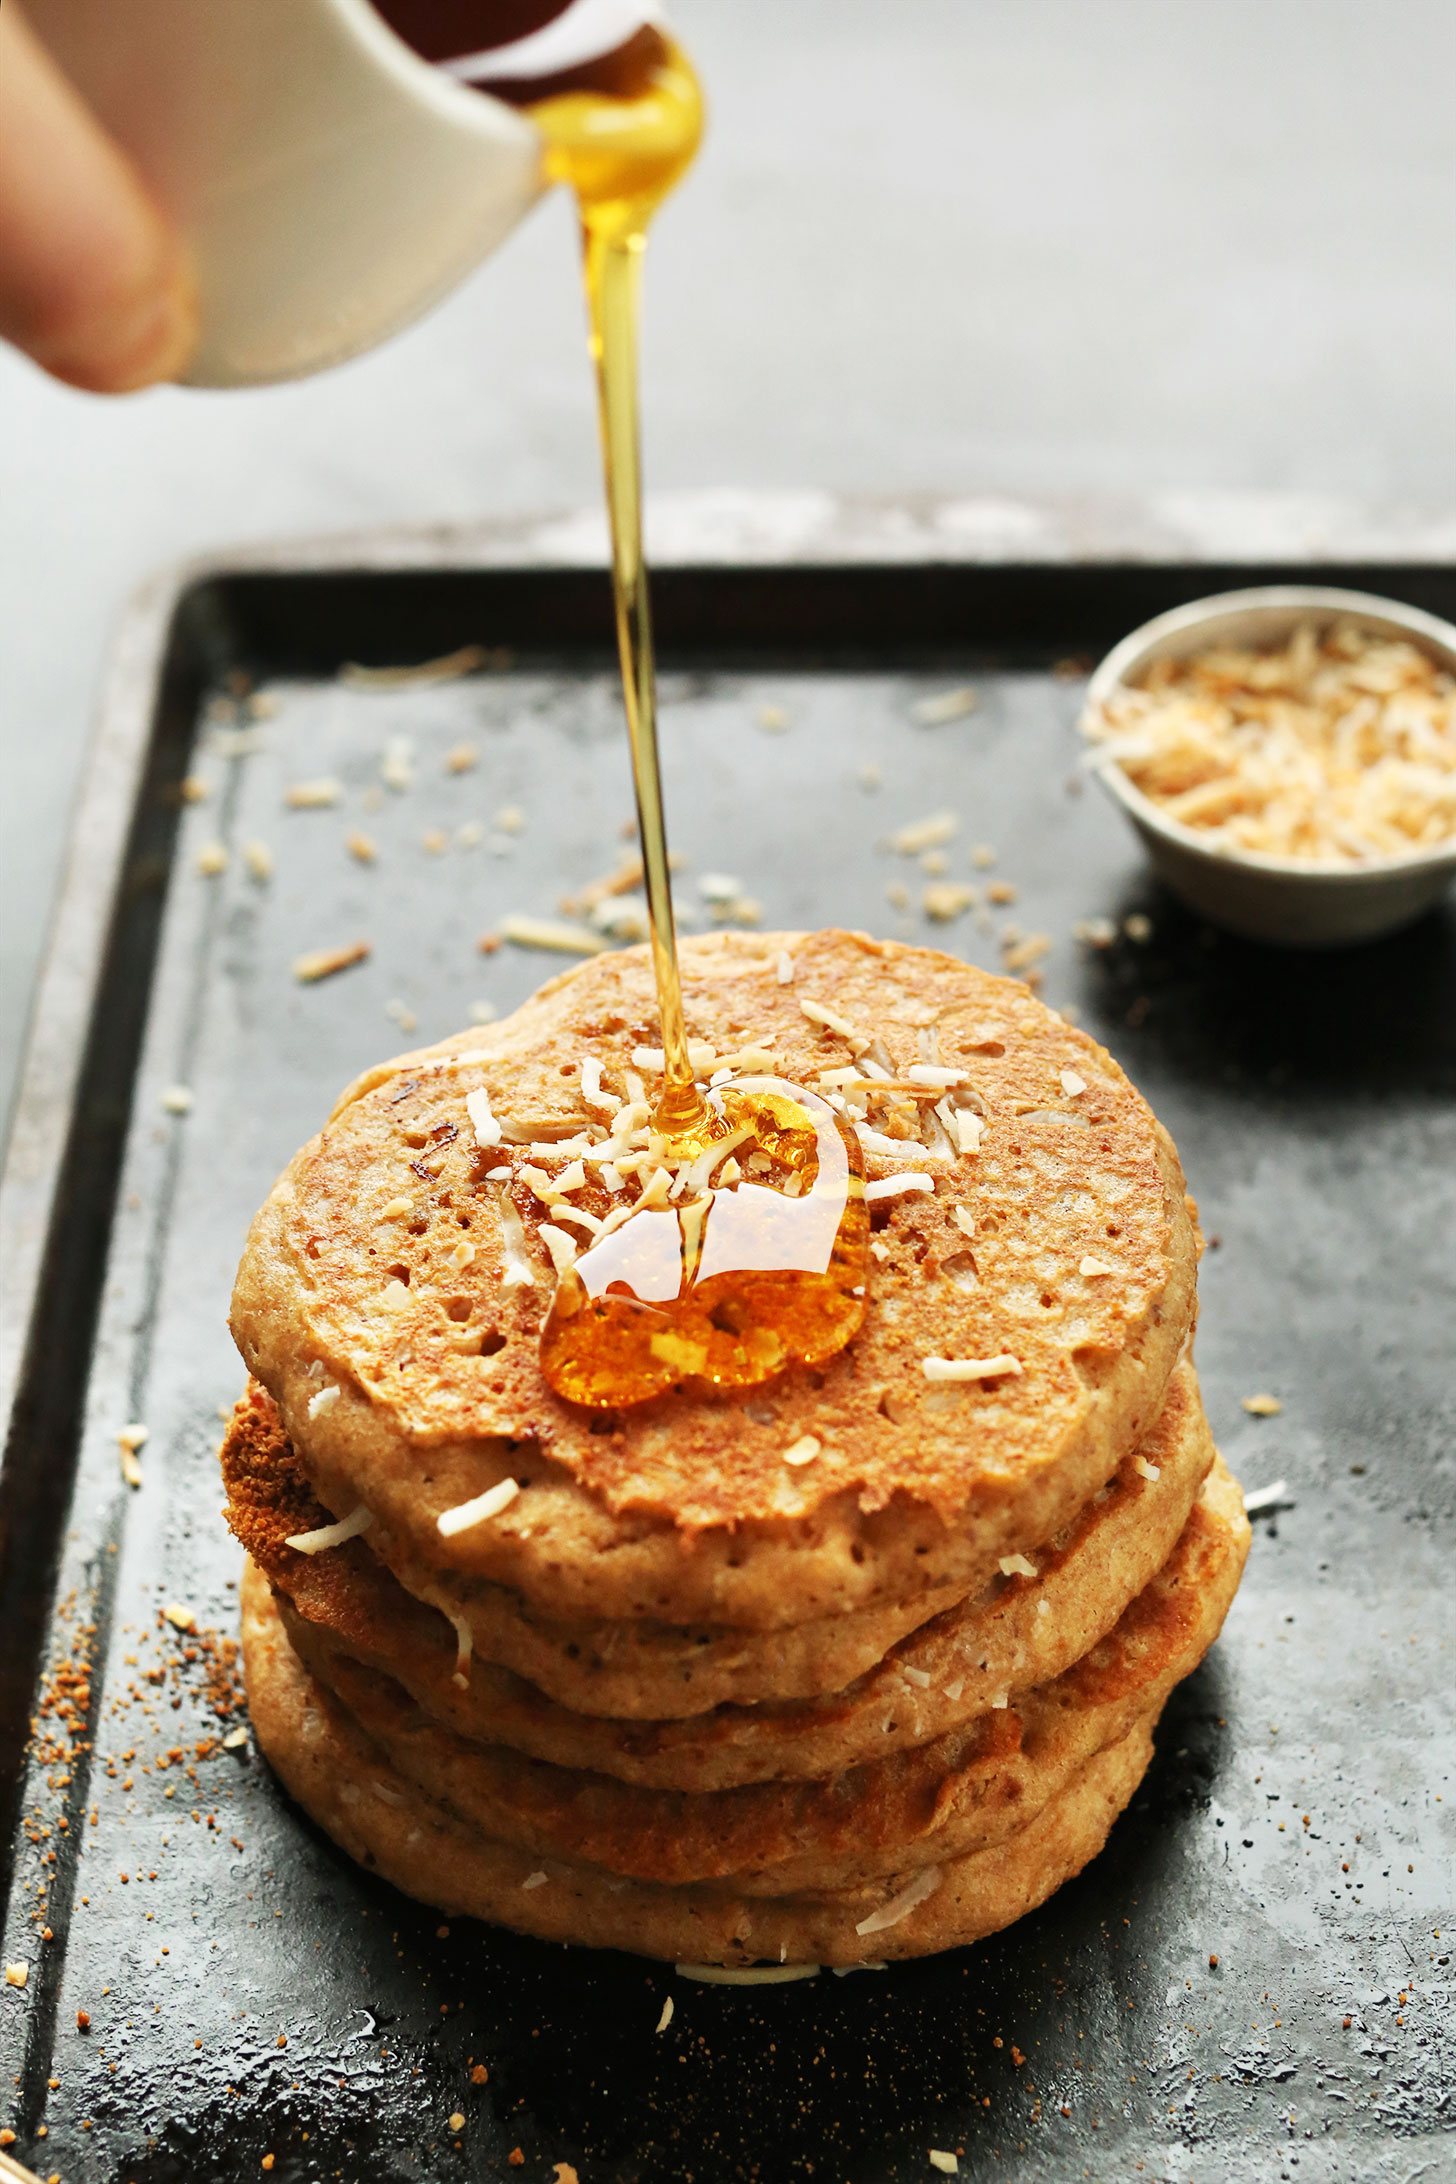 Drizzling maple syrup onto a stack of Vegan Toasted Coconut Pancakes